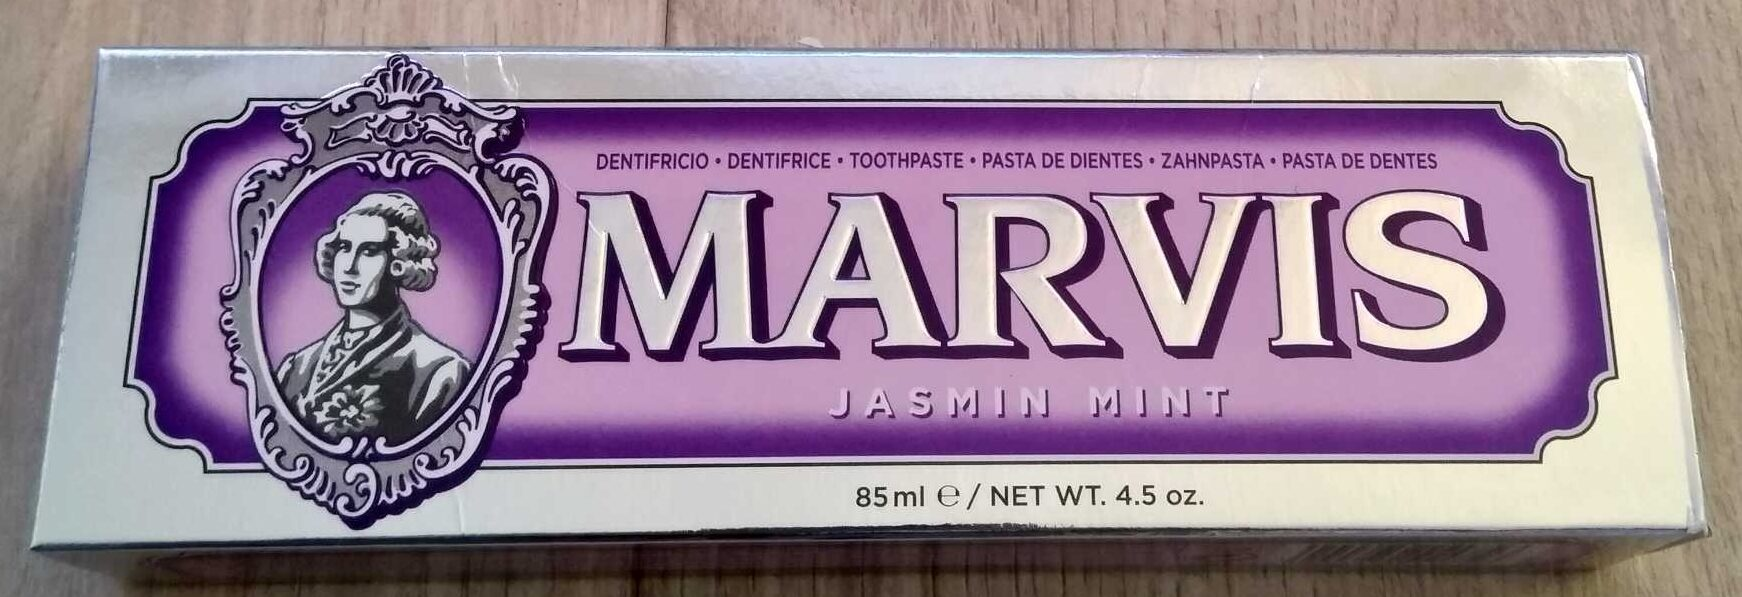 Dentifrice Jasmin Mint - Product - fr